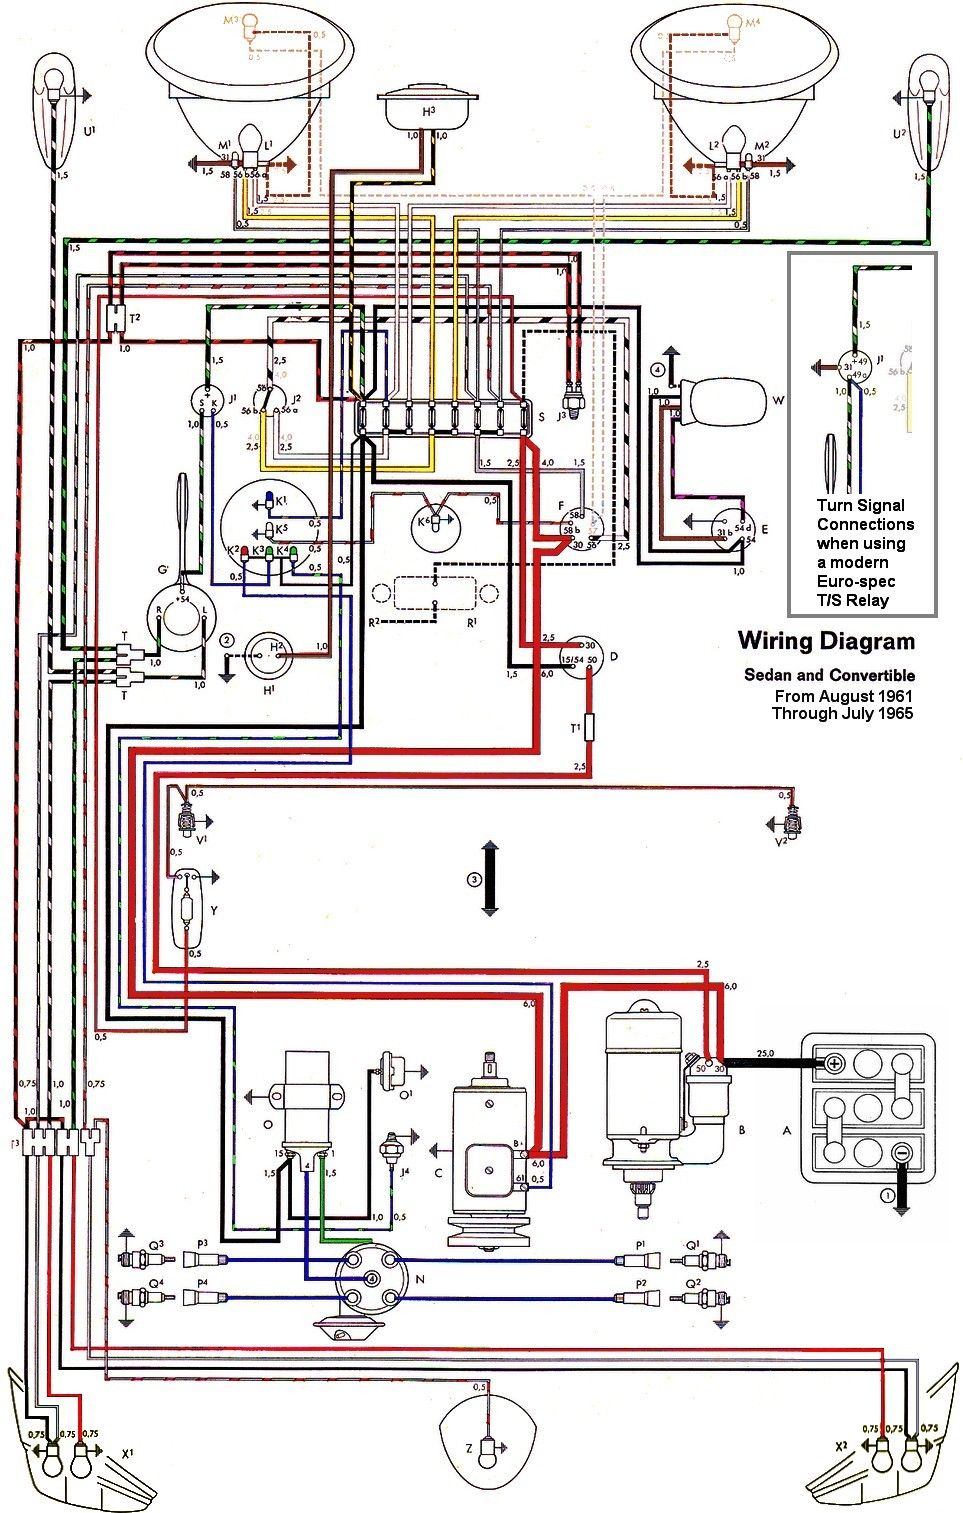 small resolution of wiring diagram vw beetle sedan and convertible 1961 1965 vw vw vw beetle harness vw beetle wiring